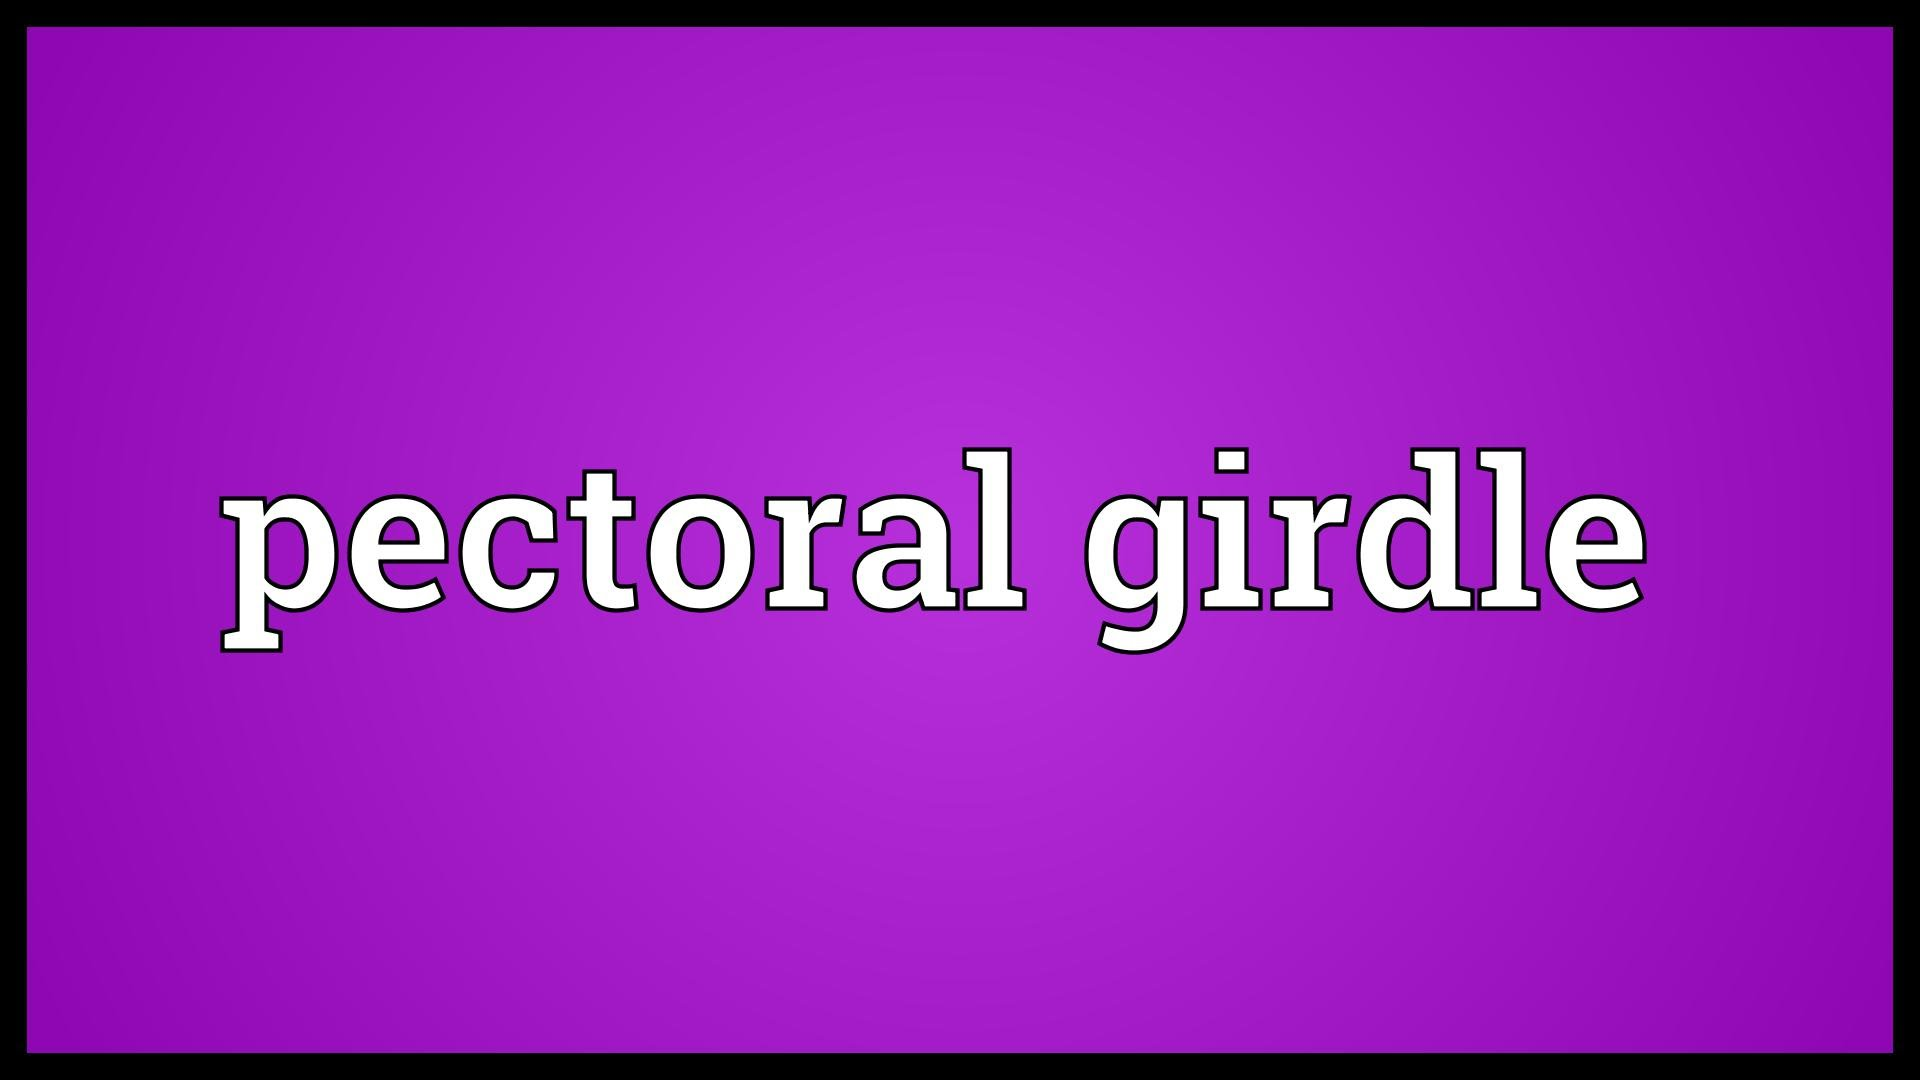 Pectoral girdle Meaning.